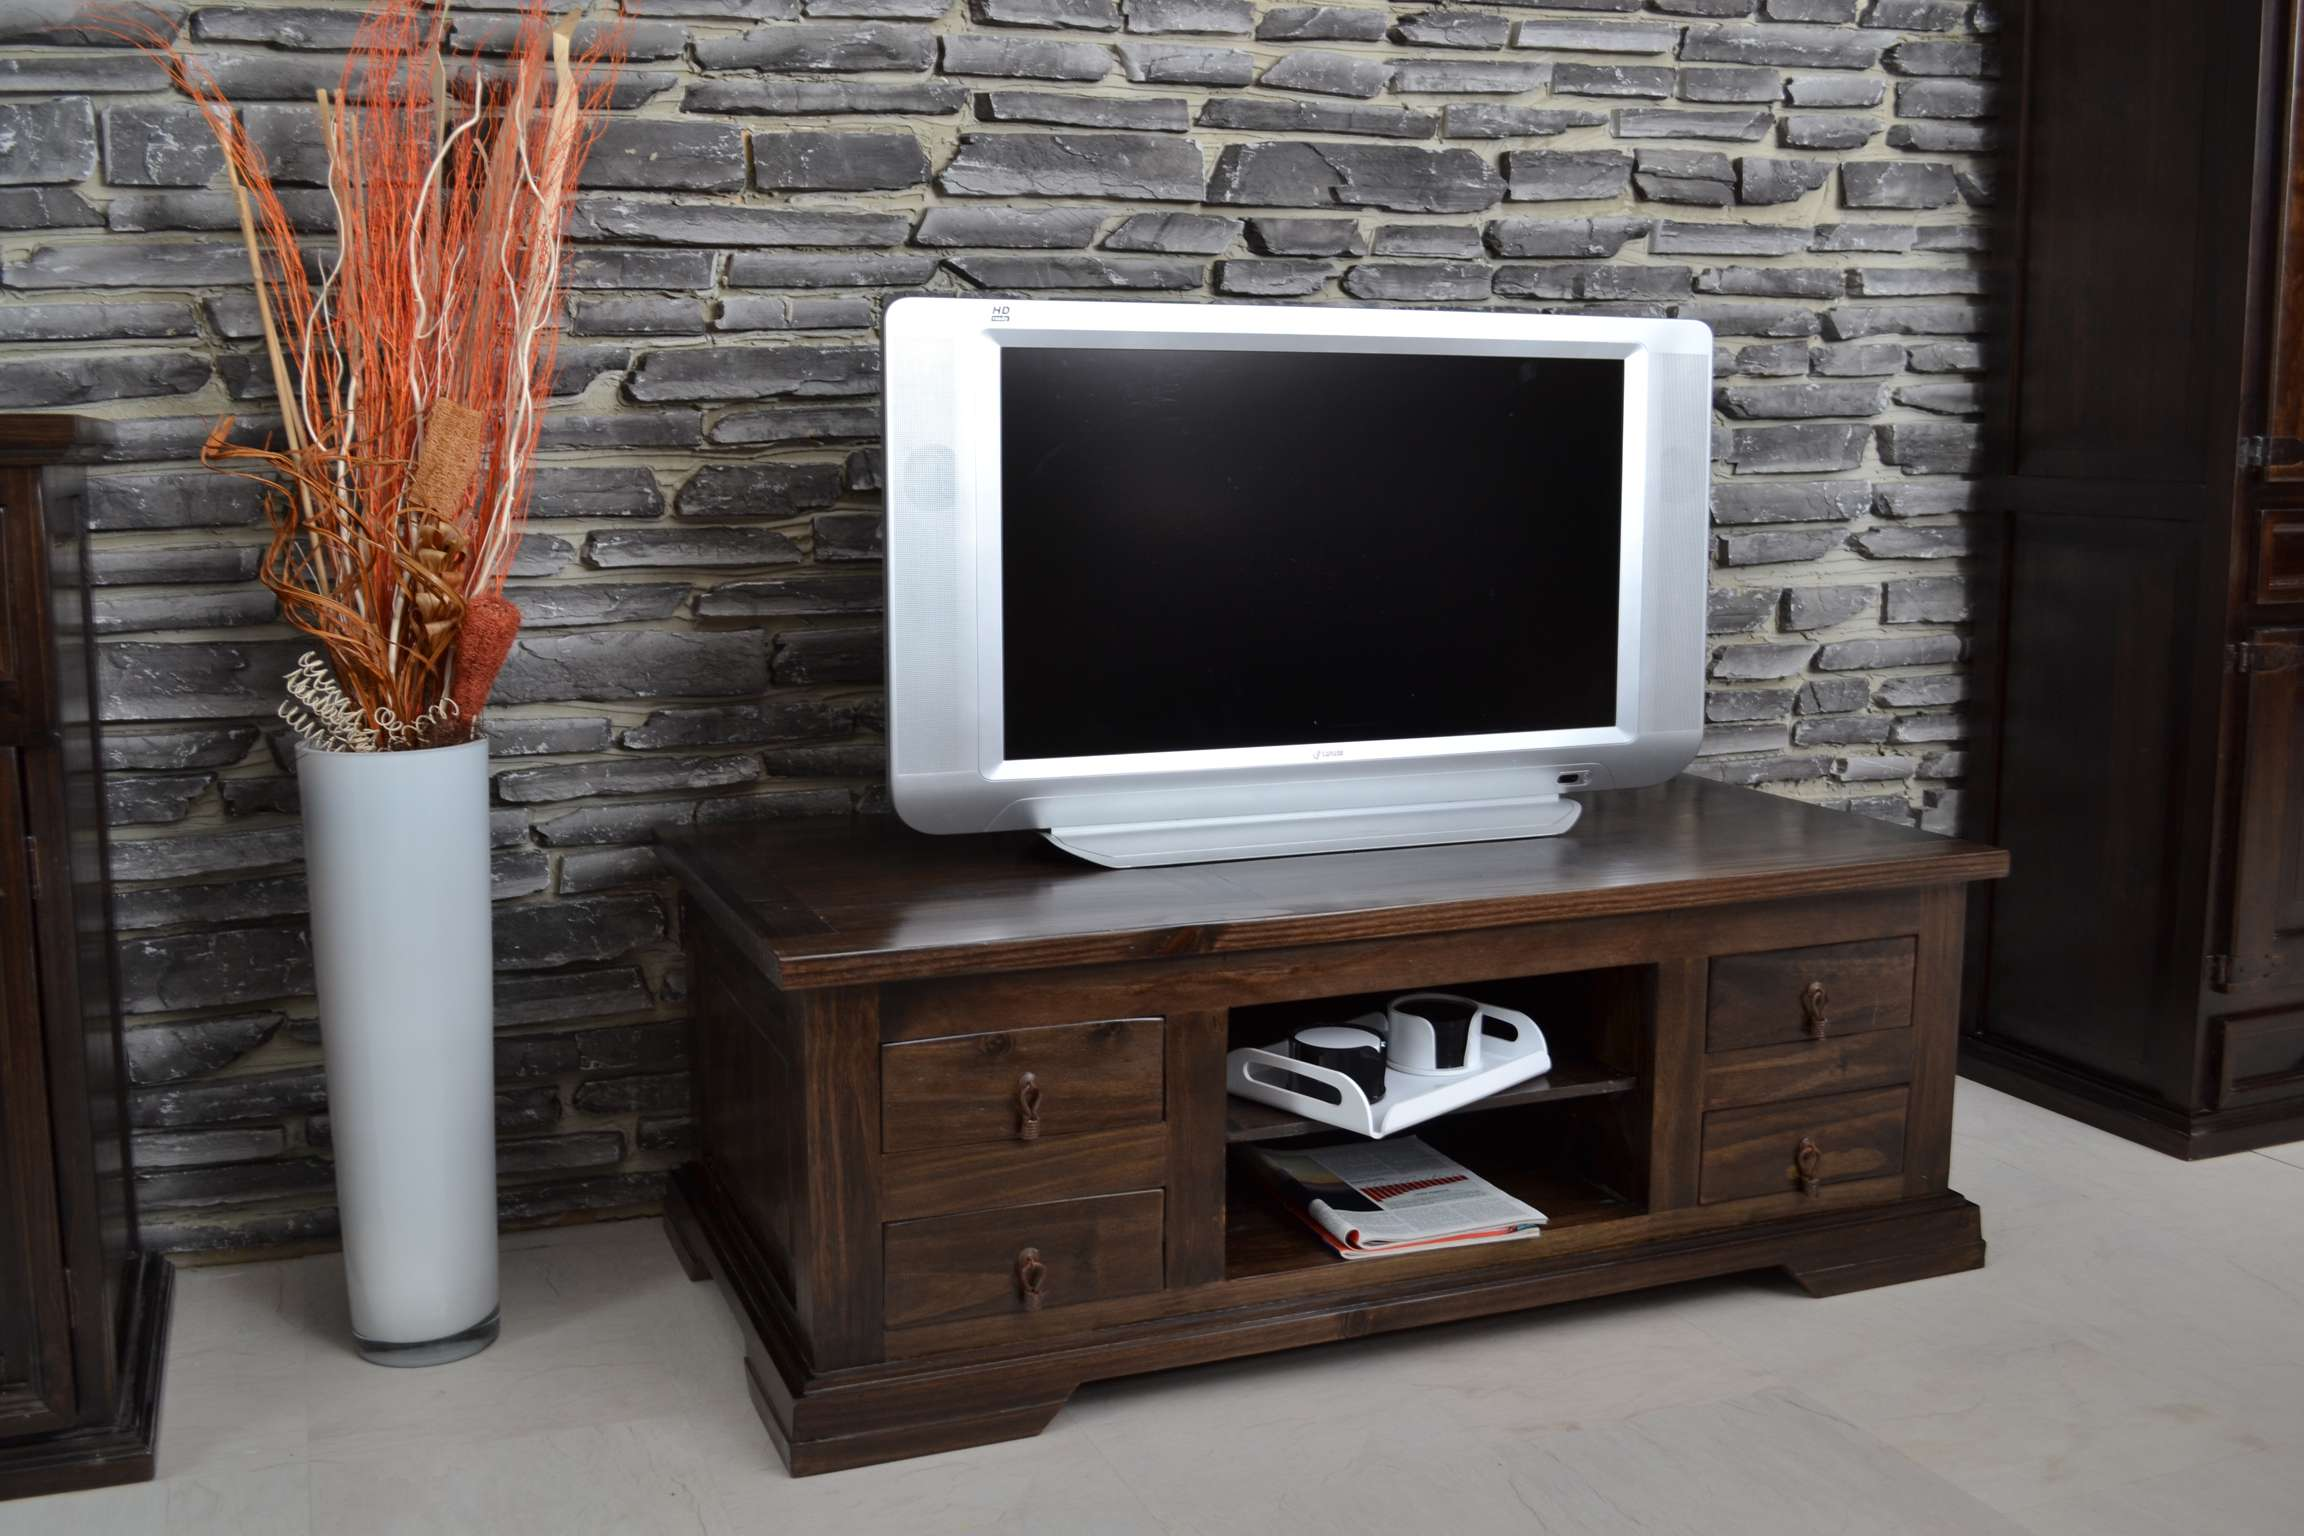 mexico tv kommode massivholz m bel pinie kolonialstil 10554 mexiko ebay. Black Bedroom Furniture Sets. Home Design Ideas